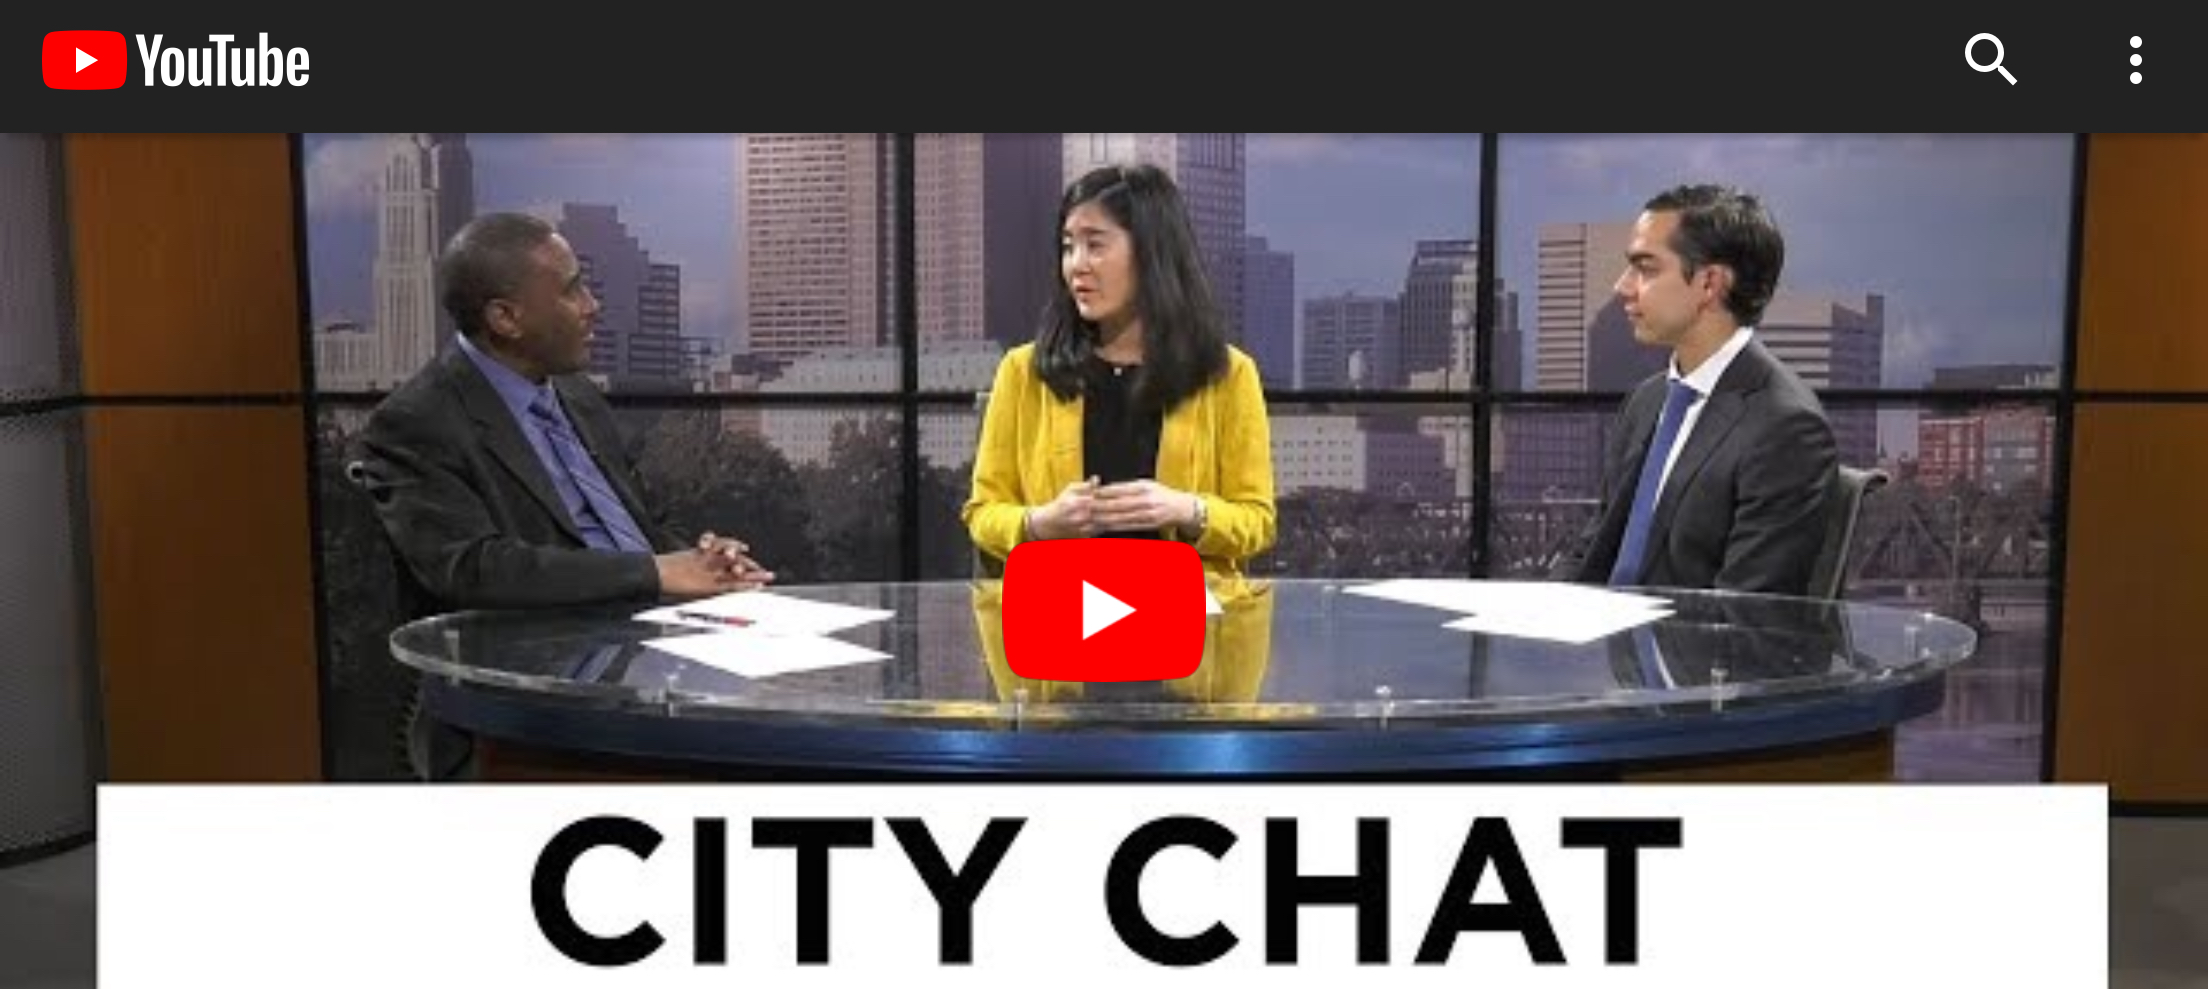 City Chat